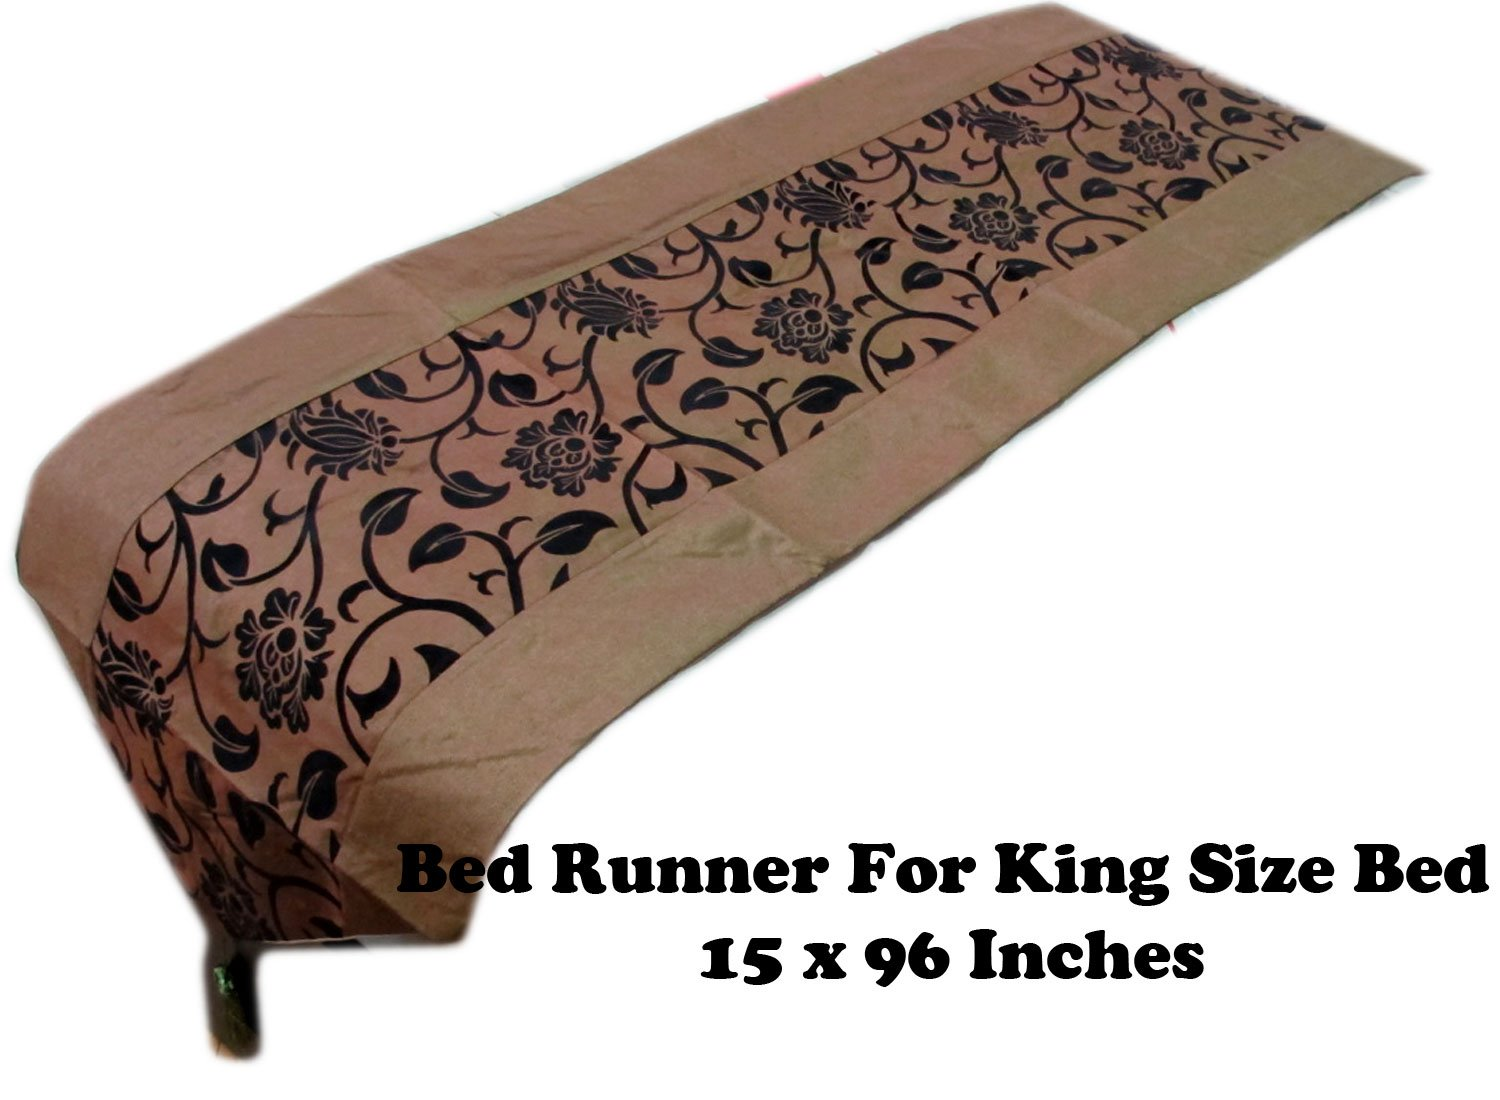 BEAUTIFUL KING SIZE 15 INCHES X 96 INCHES BED RUNNER